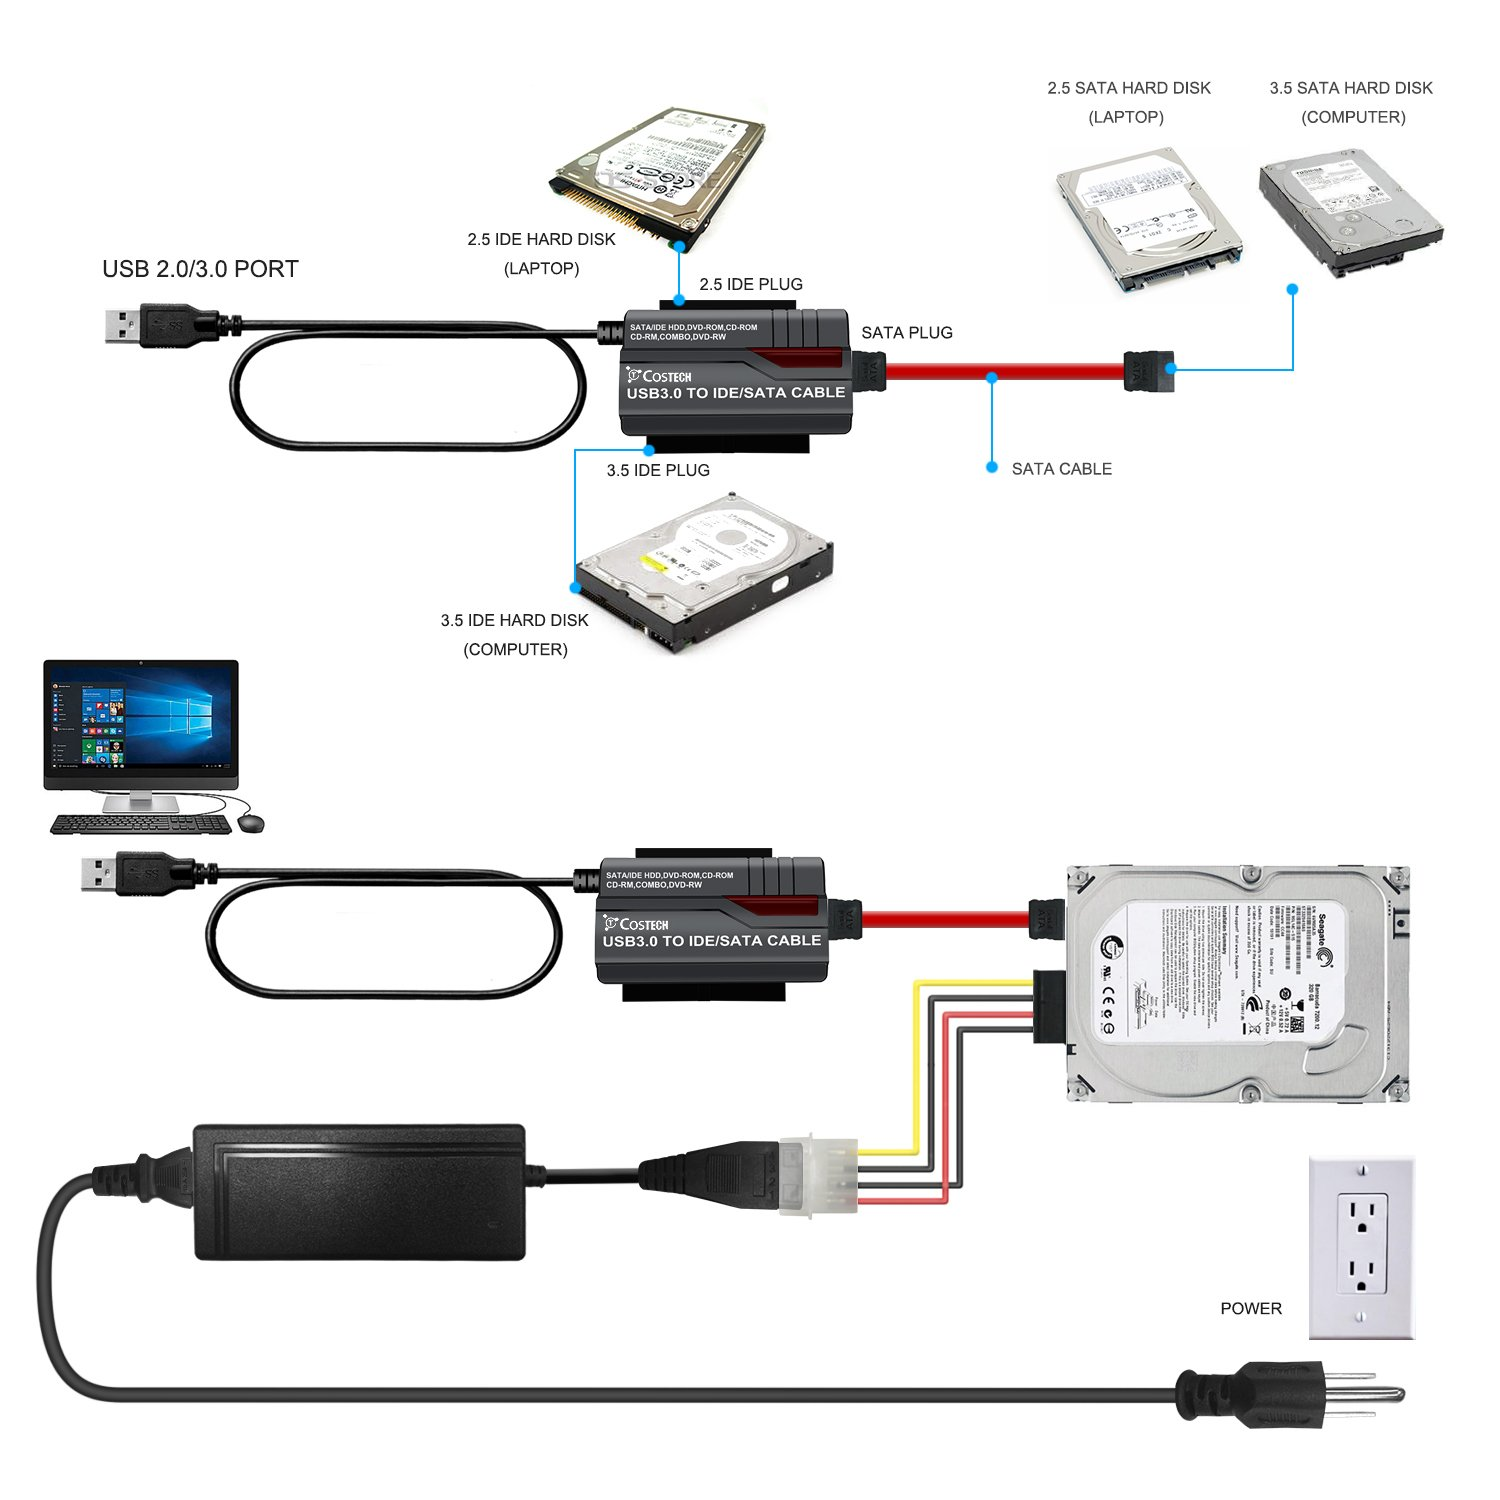 Usb Wiring Diagram Wiki Experts Of Connection Sata Cable Pinout 25 Images